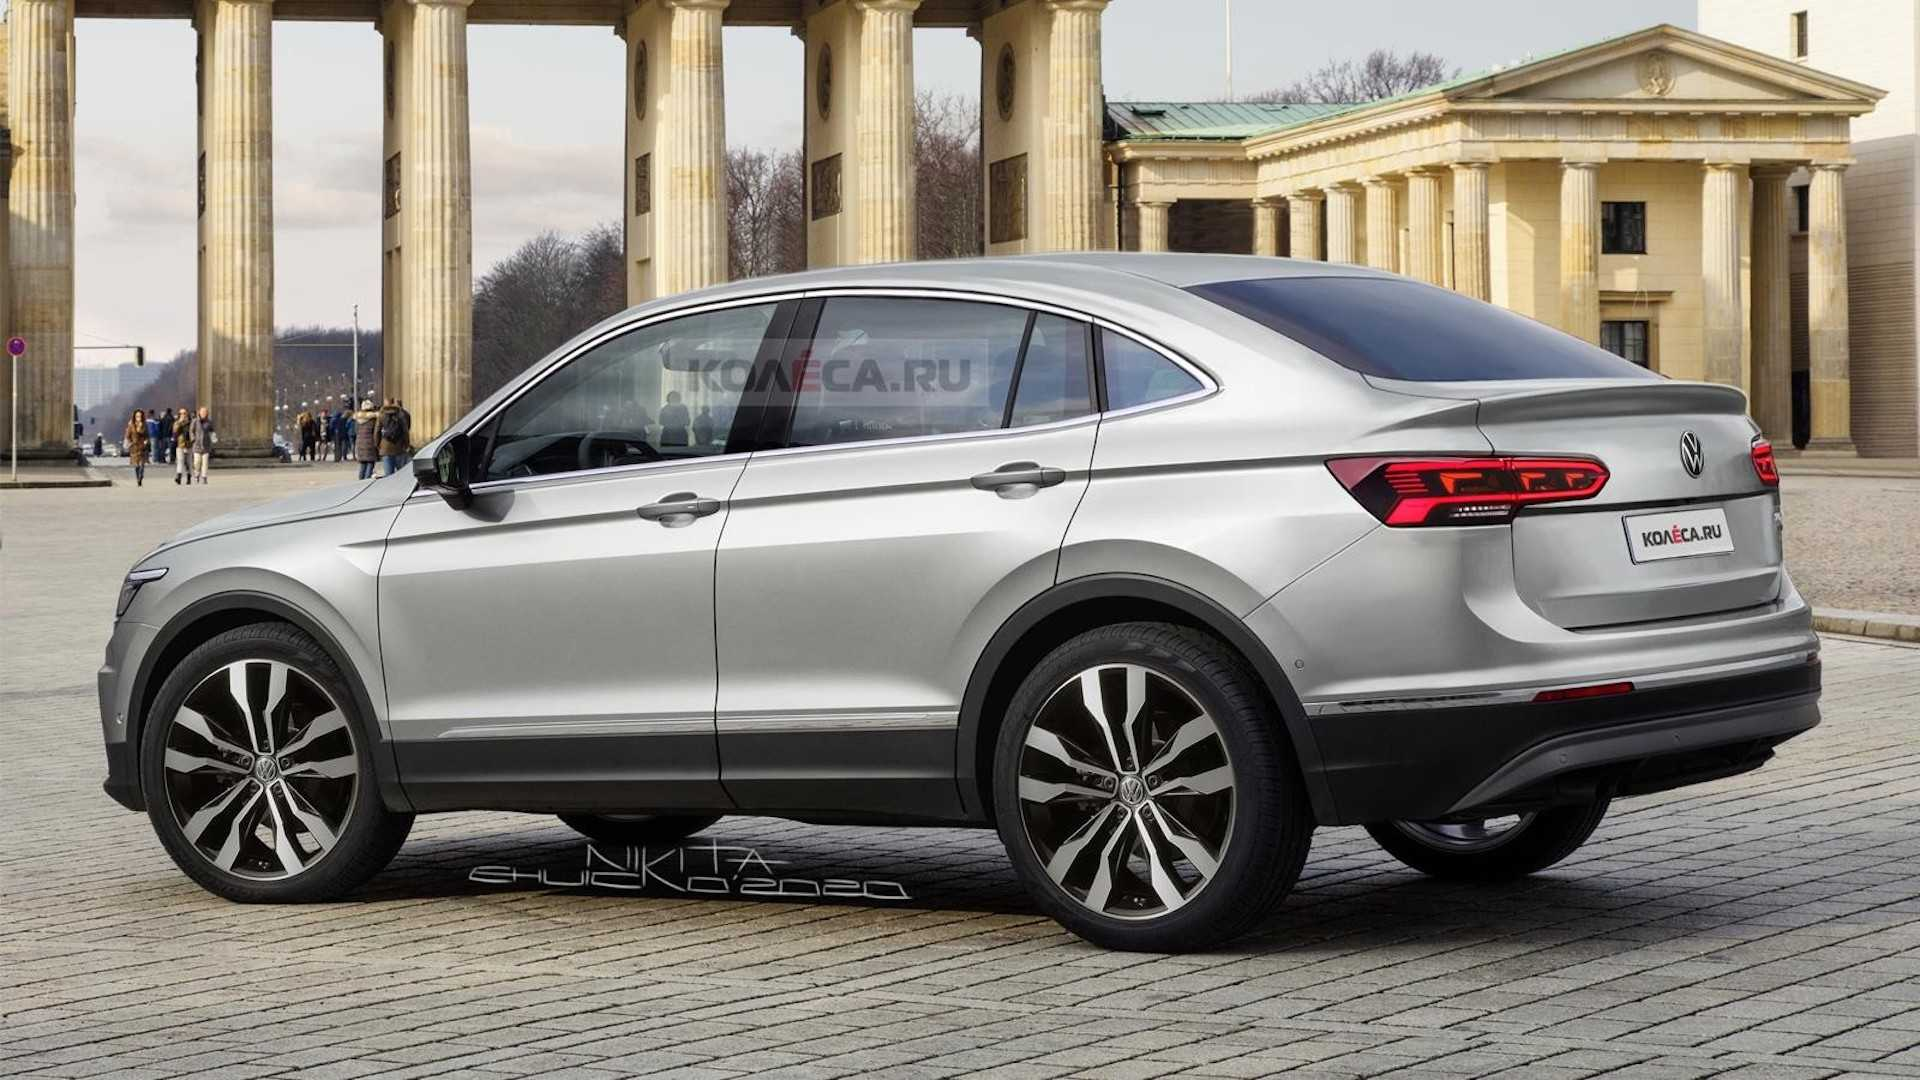 Vw Coupe Suv For China Rendered After Spy Shots